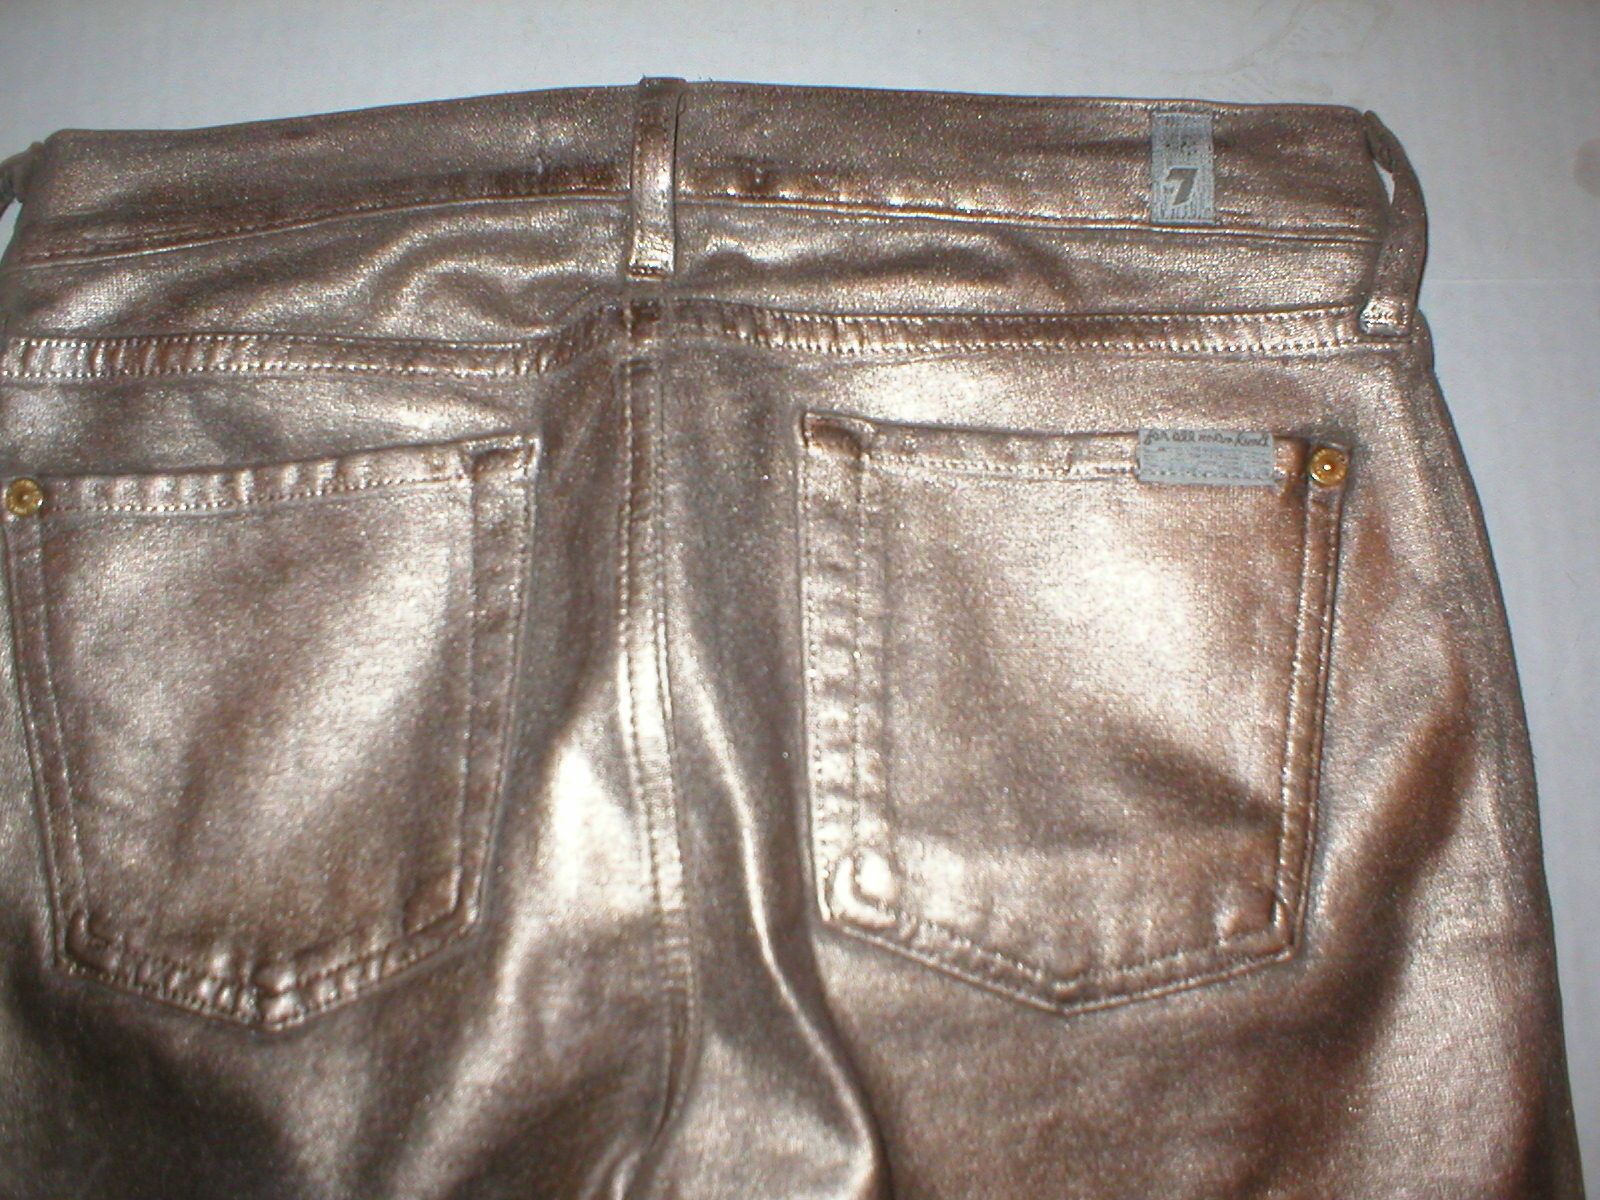 New 7 FAM Jeans For All Mankind Womens Leather Coated gold Bronze Metallic 27